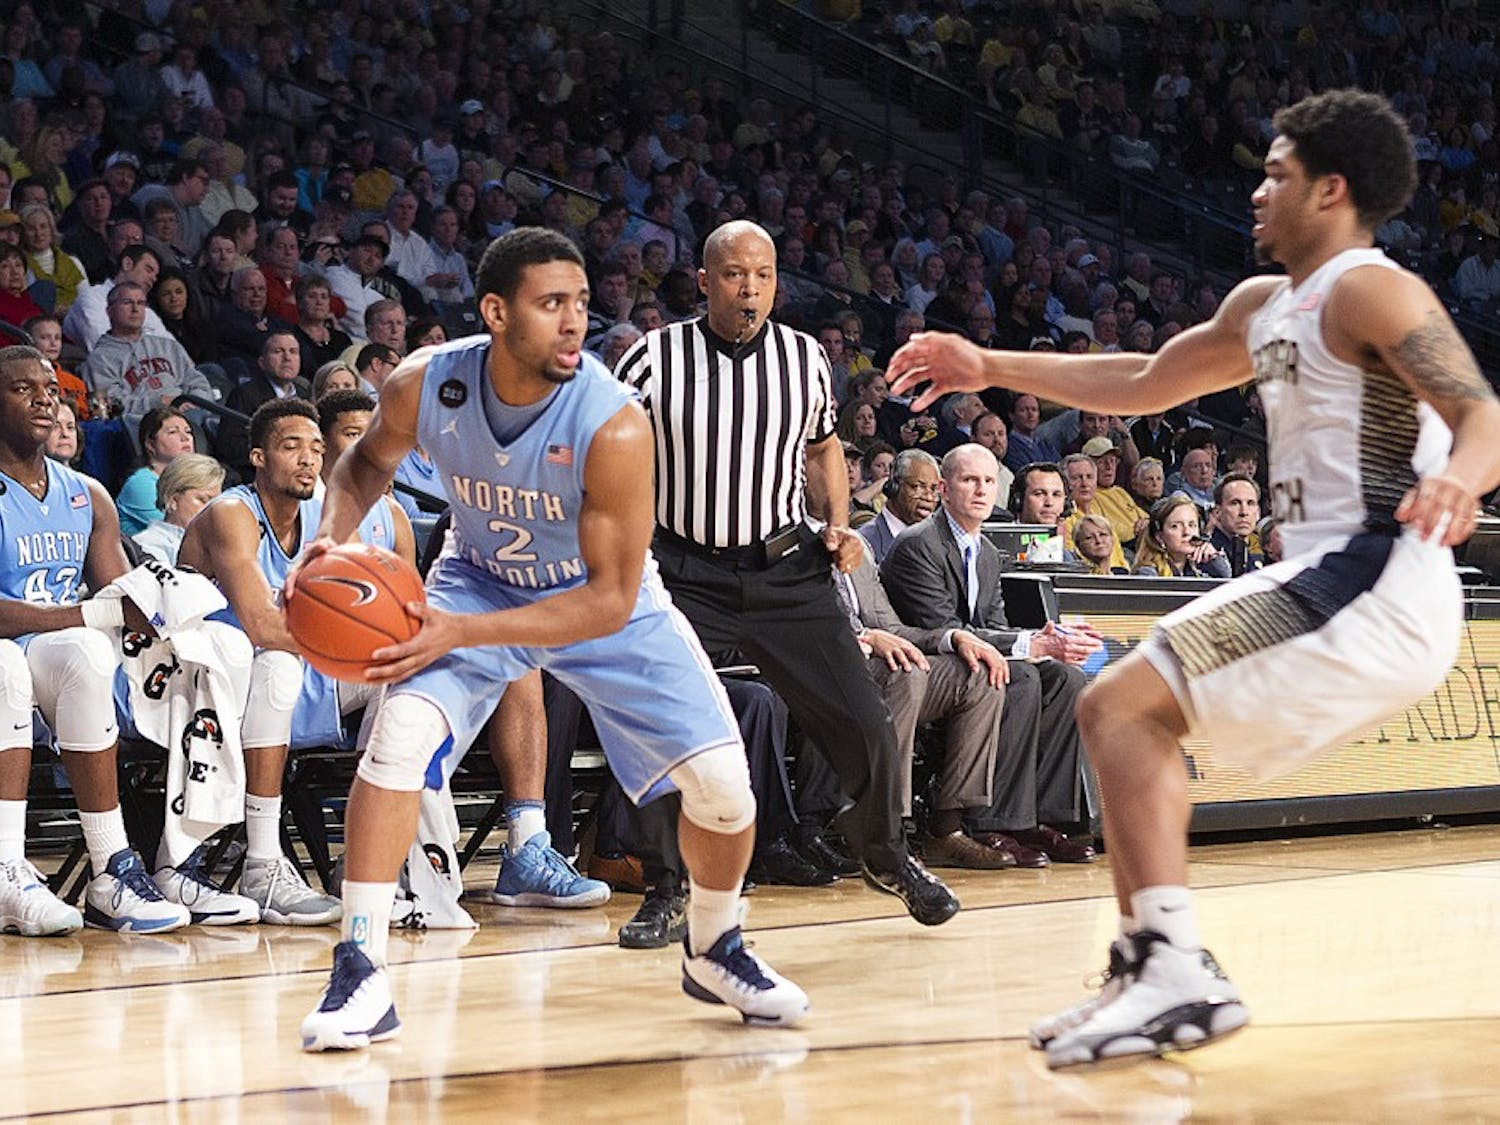 Courtesy of Technique/John Nakano. Freshman point guard Joel Berry (2) made a career-high 15 points Tuesday night in North Carolina's 81-49 win over Georgia Tech.